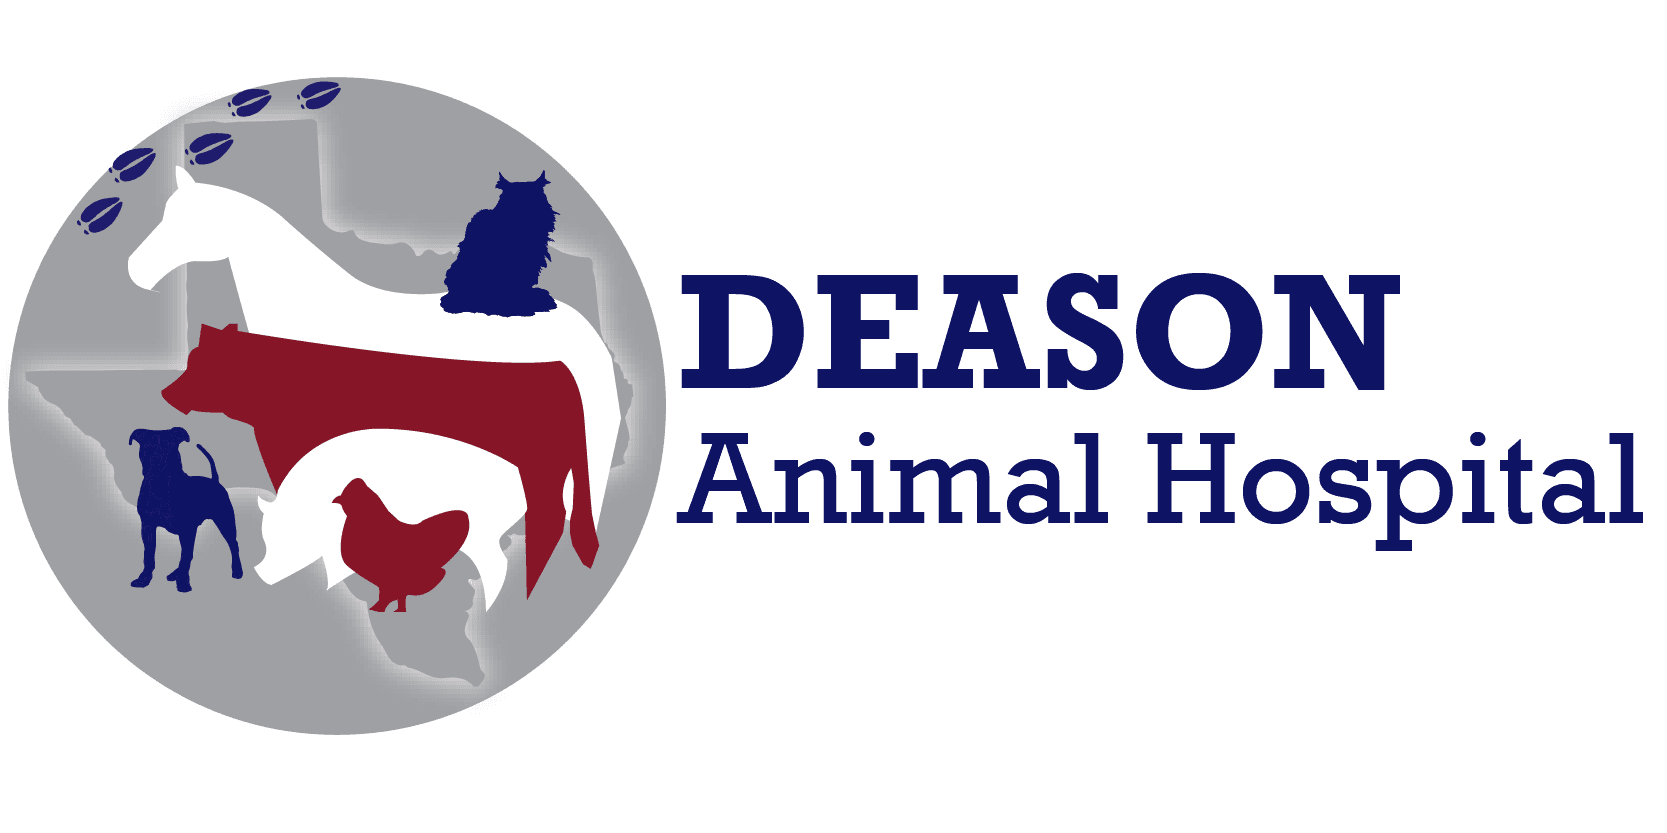 Teresa M. Gilmore, veterinarian at Deason Animal Hospital in Floresville Texas